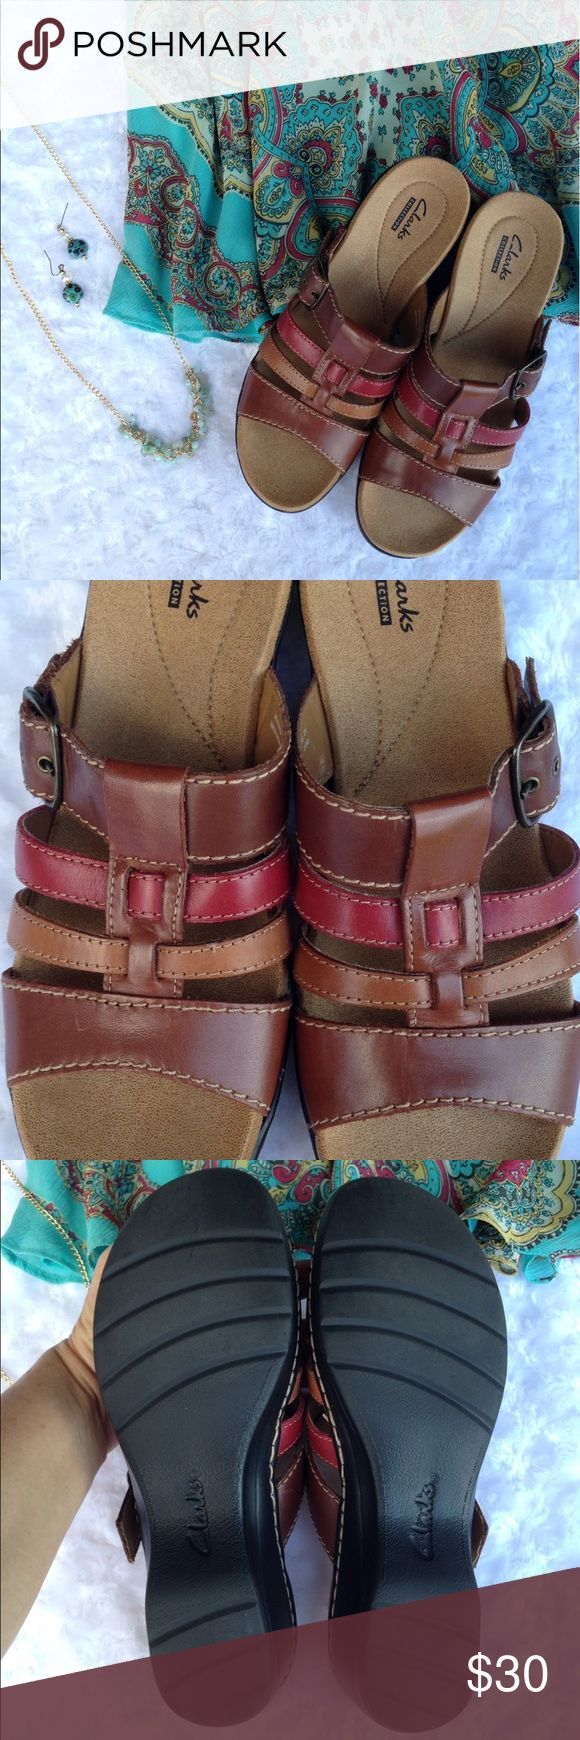 """Clarks Sandals Brown & Pink These Clarks sandals are so cushiony and comfortable with shades of brown and a darker pink. Pre-owned in like-new condition. Where your foot sits measures approx 10"""" and heel height 2"""". You can bundle with the other pair to save $, honey. Thank you for looking and sharing. Clarks Shoes Sandals"""